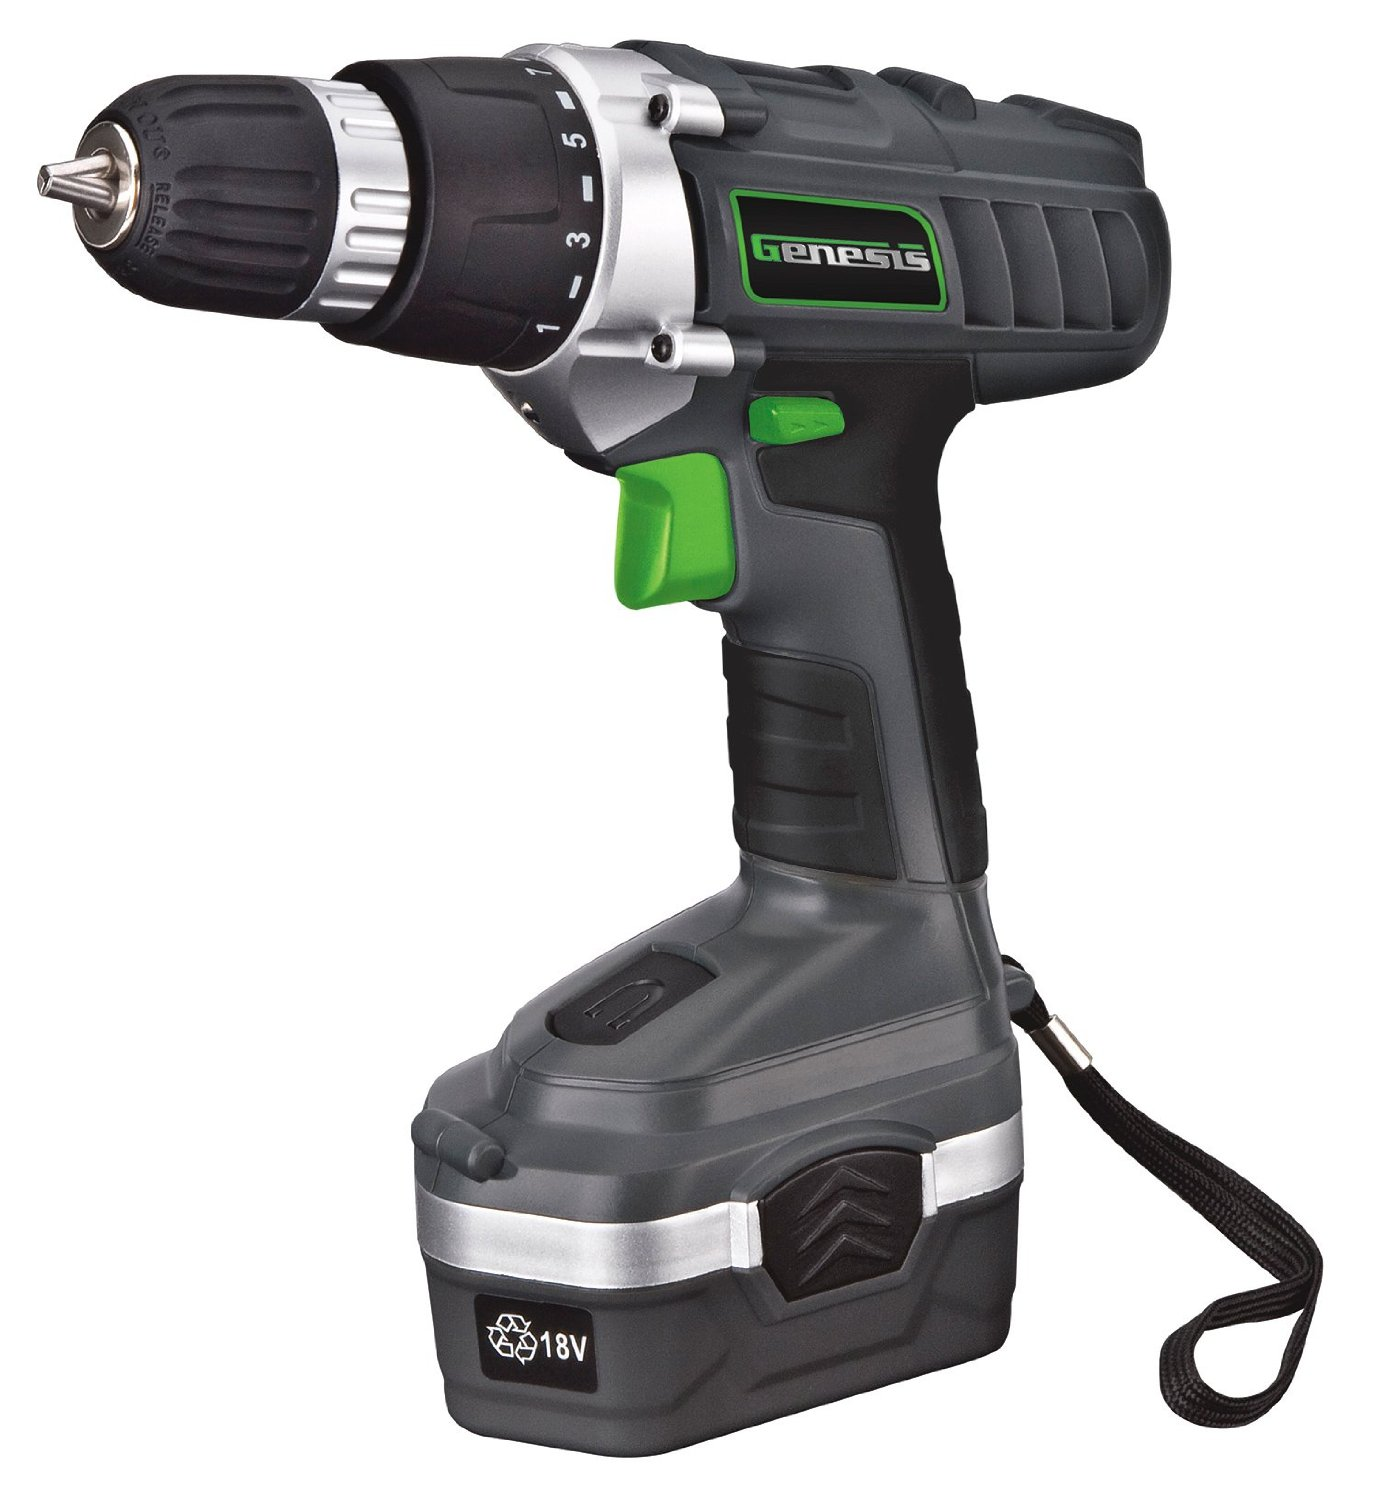 Best 18V Cordless Drill | Power Tools Planet